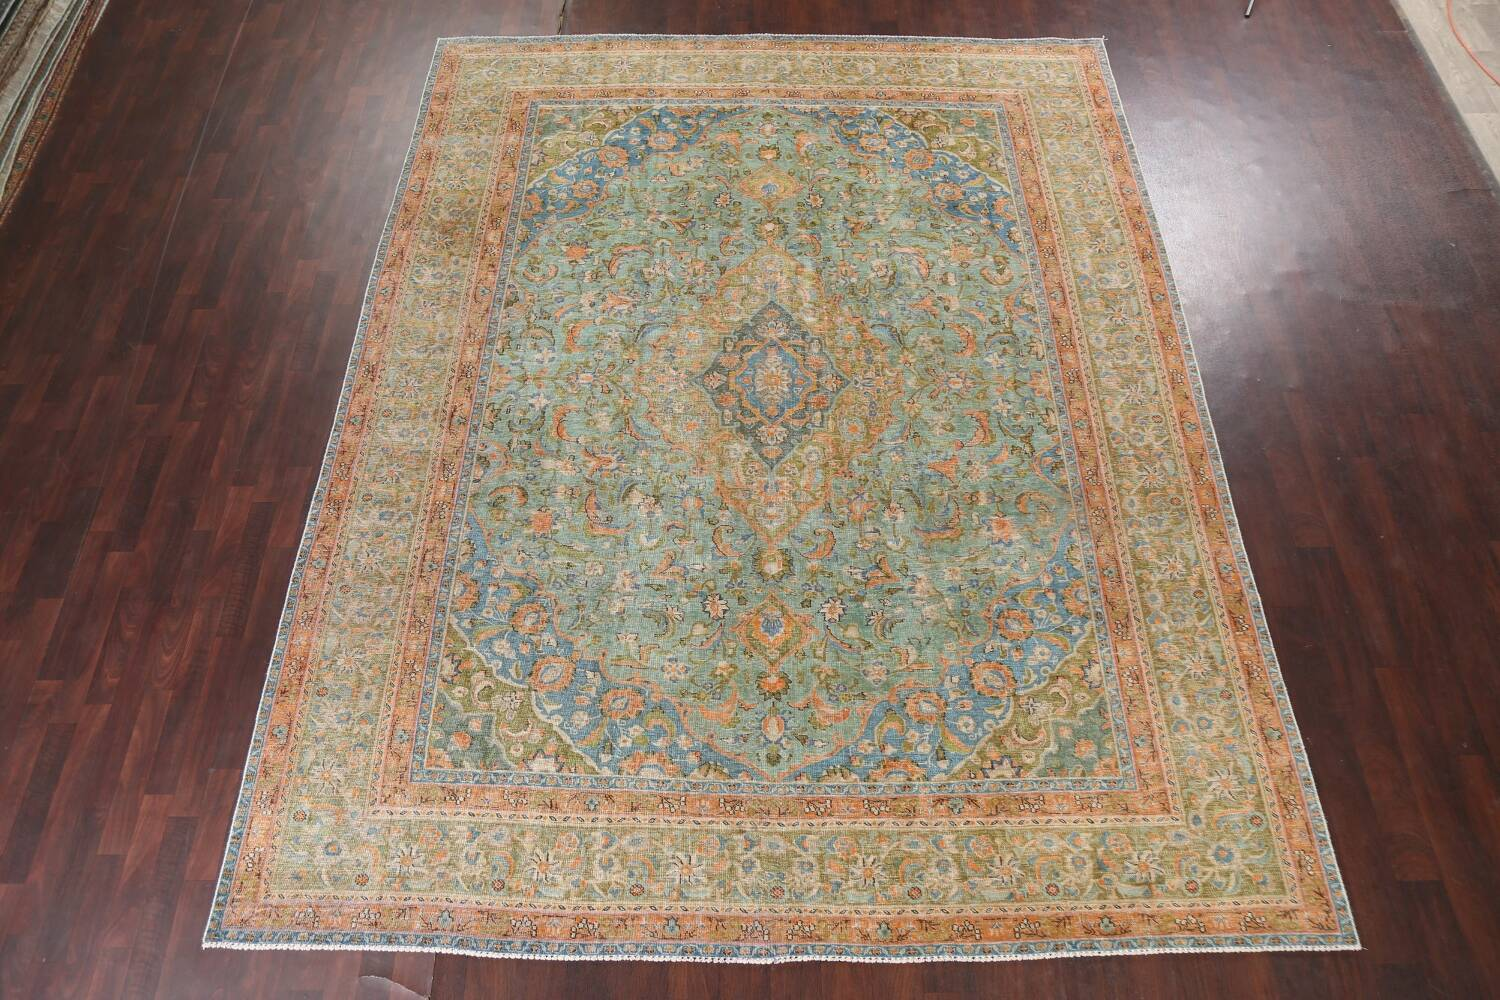 Antique Distressed Over-Dye Kashan Persian Area Rug 9x12 image 3